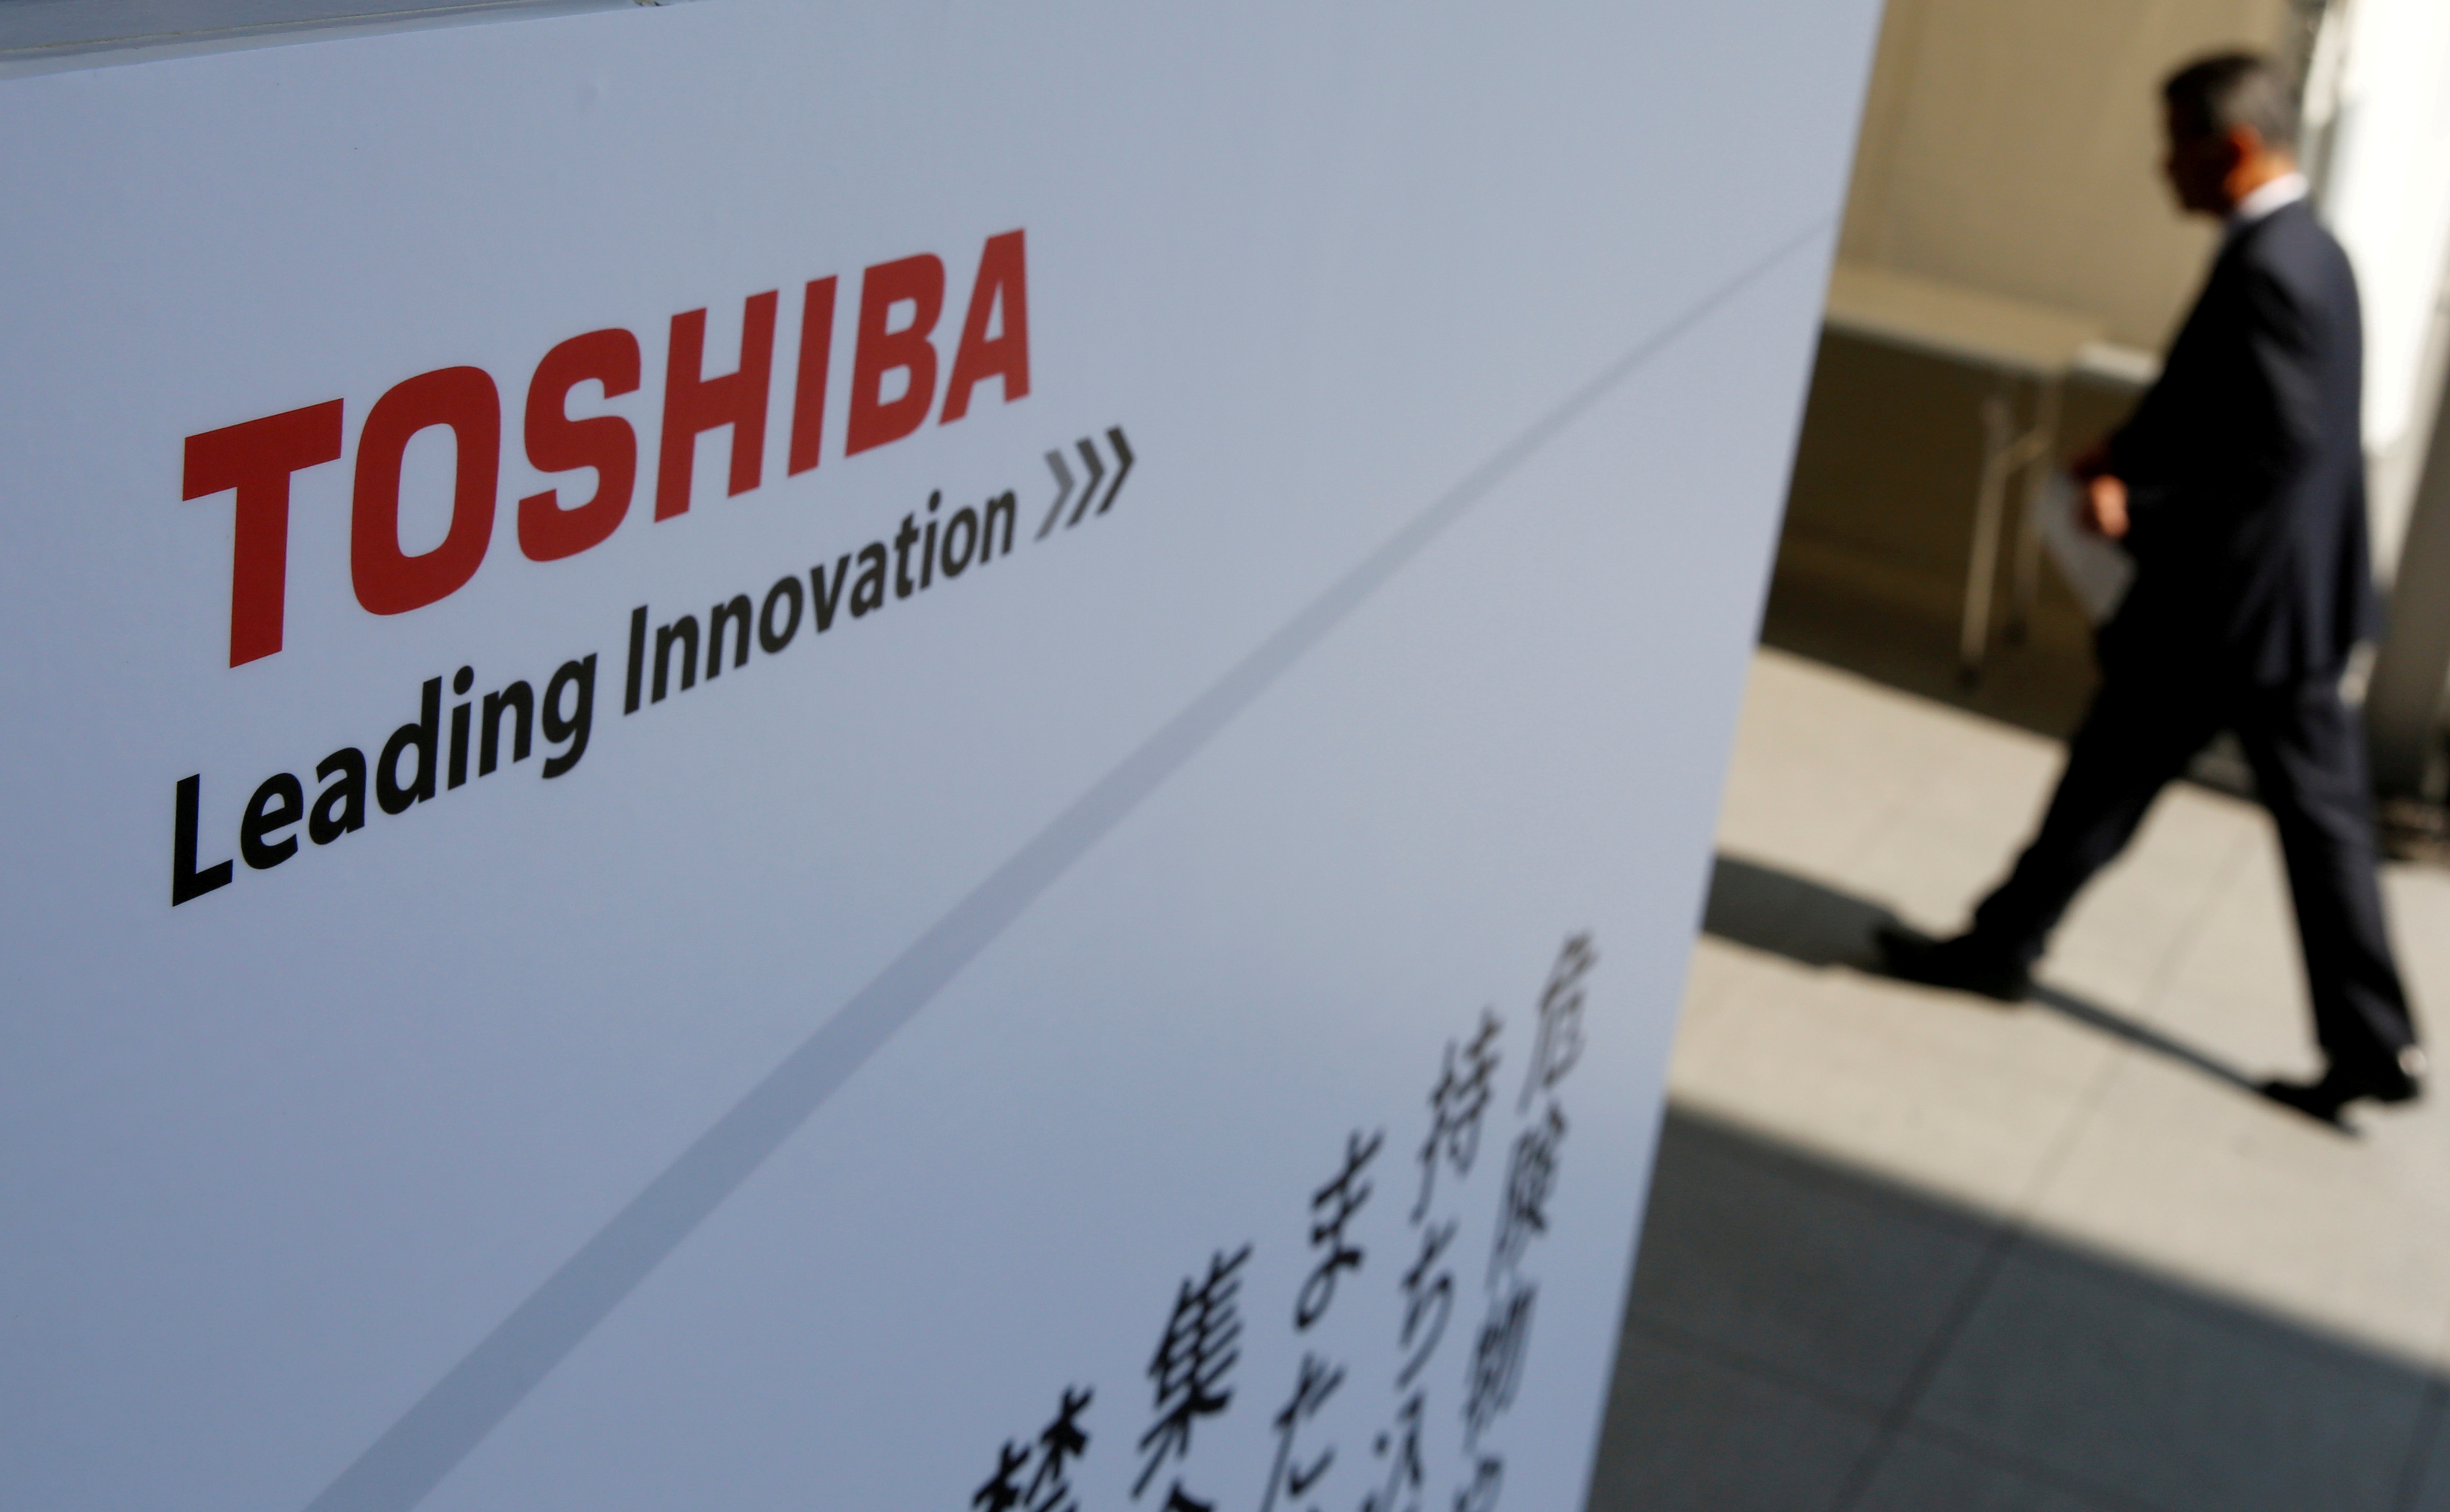 The logo of Toshiba is seen as a shareholder arrives at an extraordinary shareholders meeting in Chiba, Japan, March 30, 2017. REUTERS/Toru Hanai/File Photo